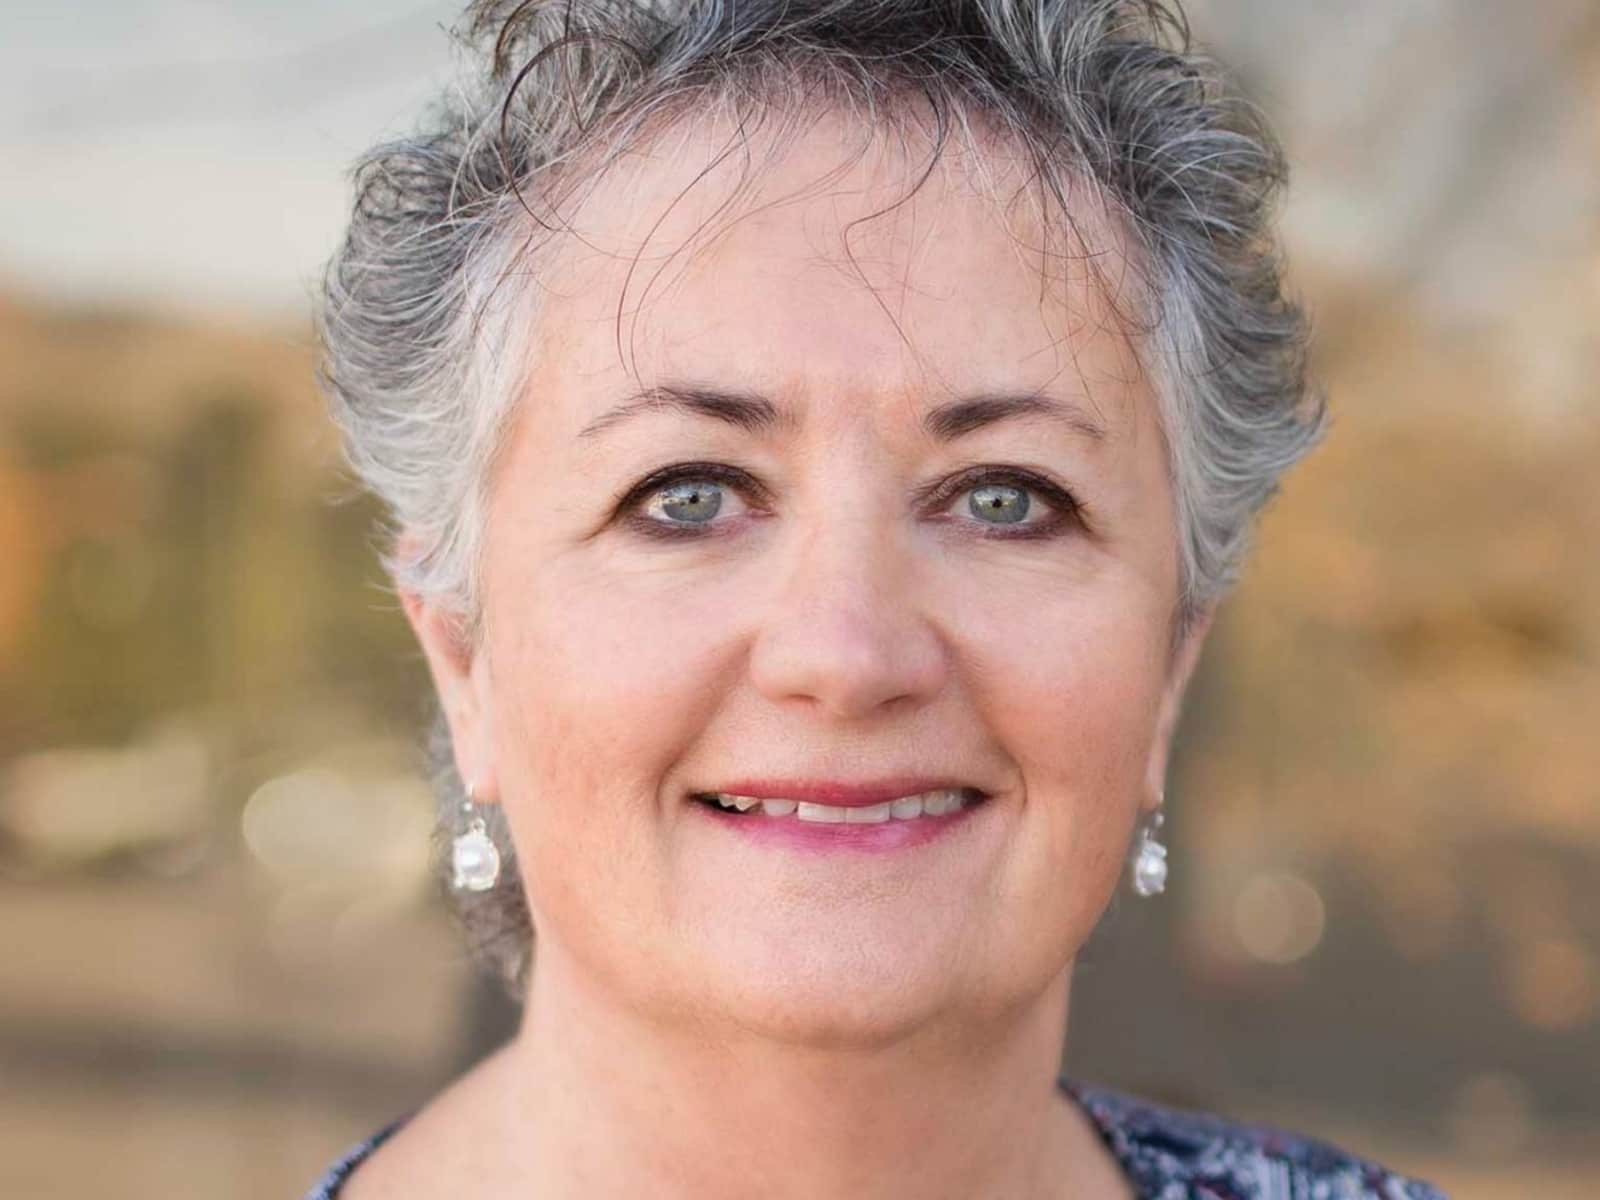 Donna from Thousand Oaks, California, United States